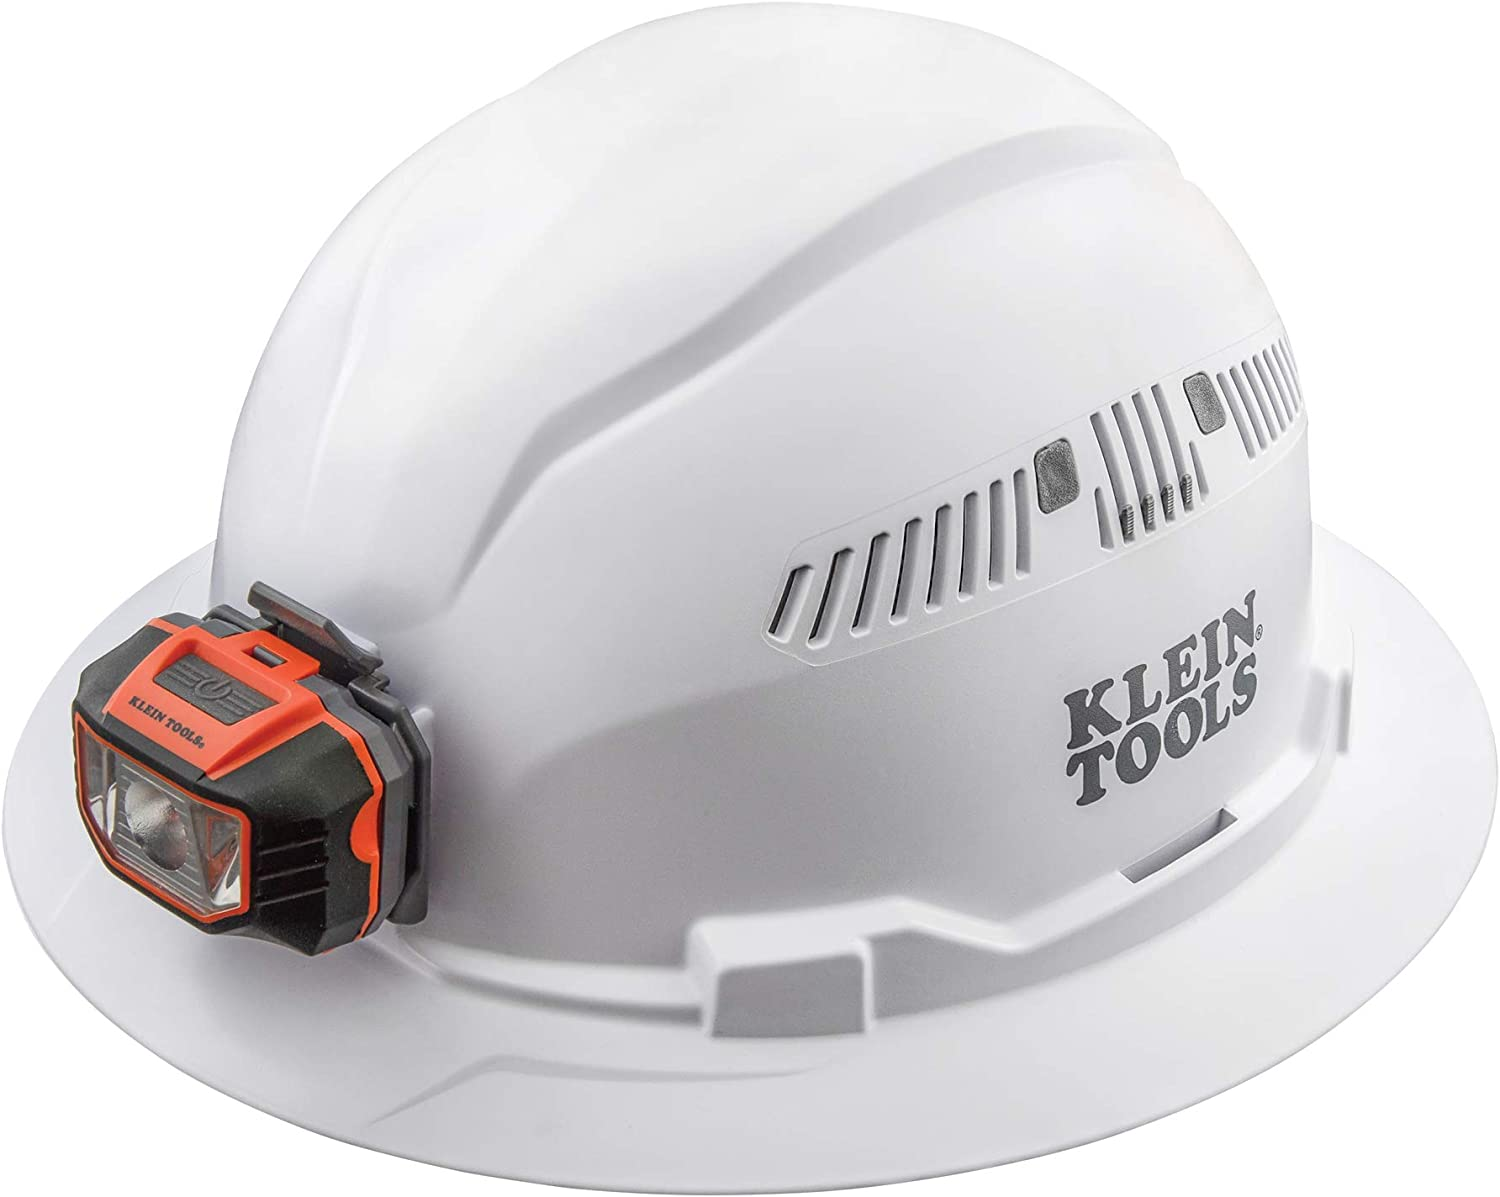 Klein Tools 60407 Hard Hat, Light, Vented Full Brim Style, Padded, Self-Wicking Odor-Resistant Sweatband, White - -